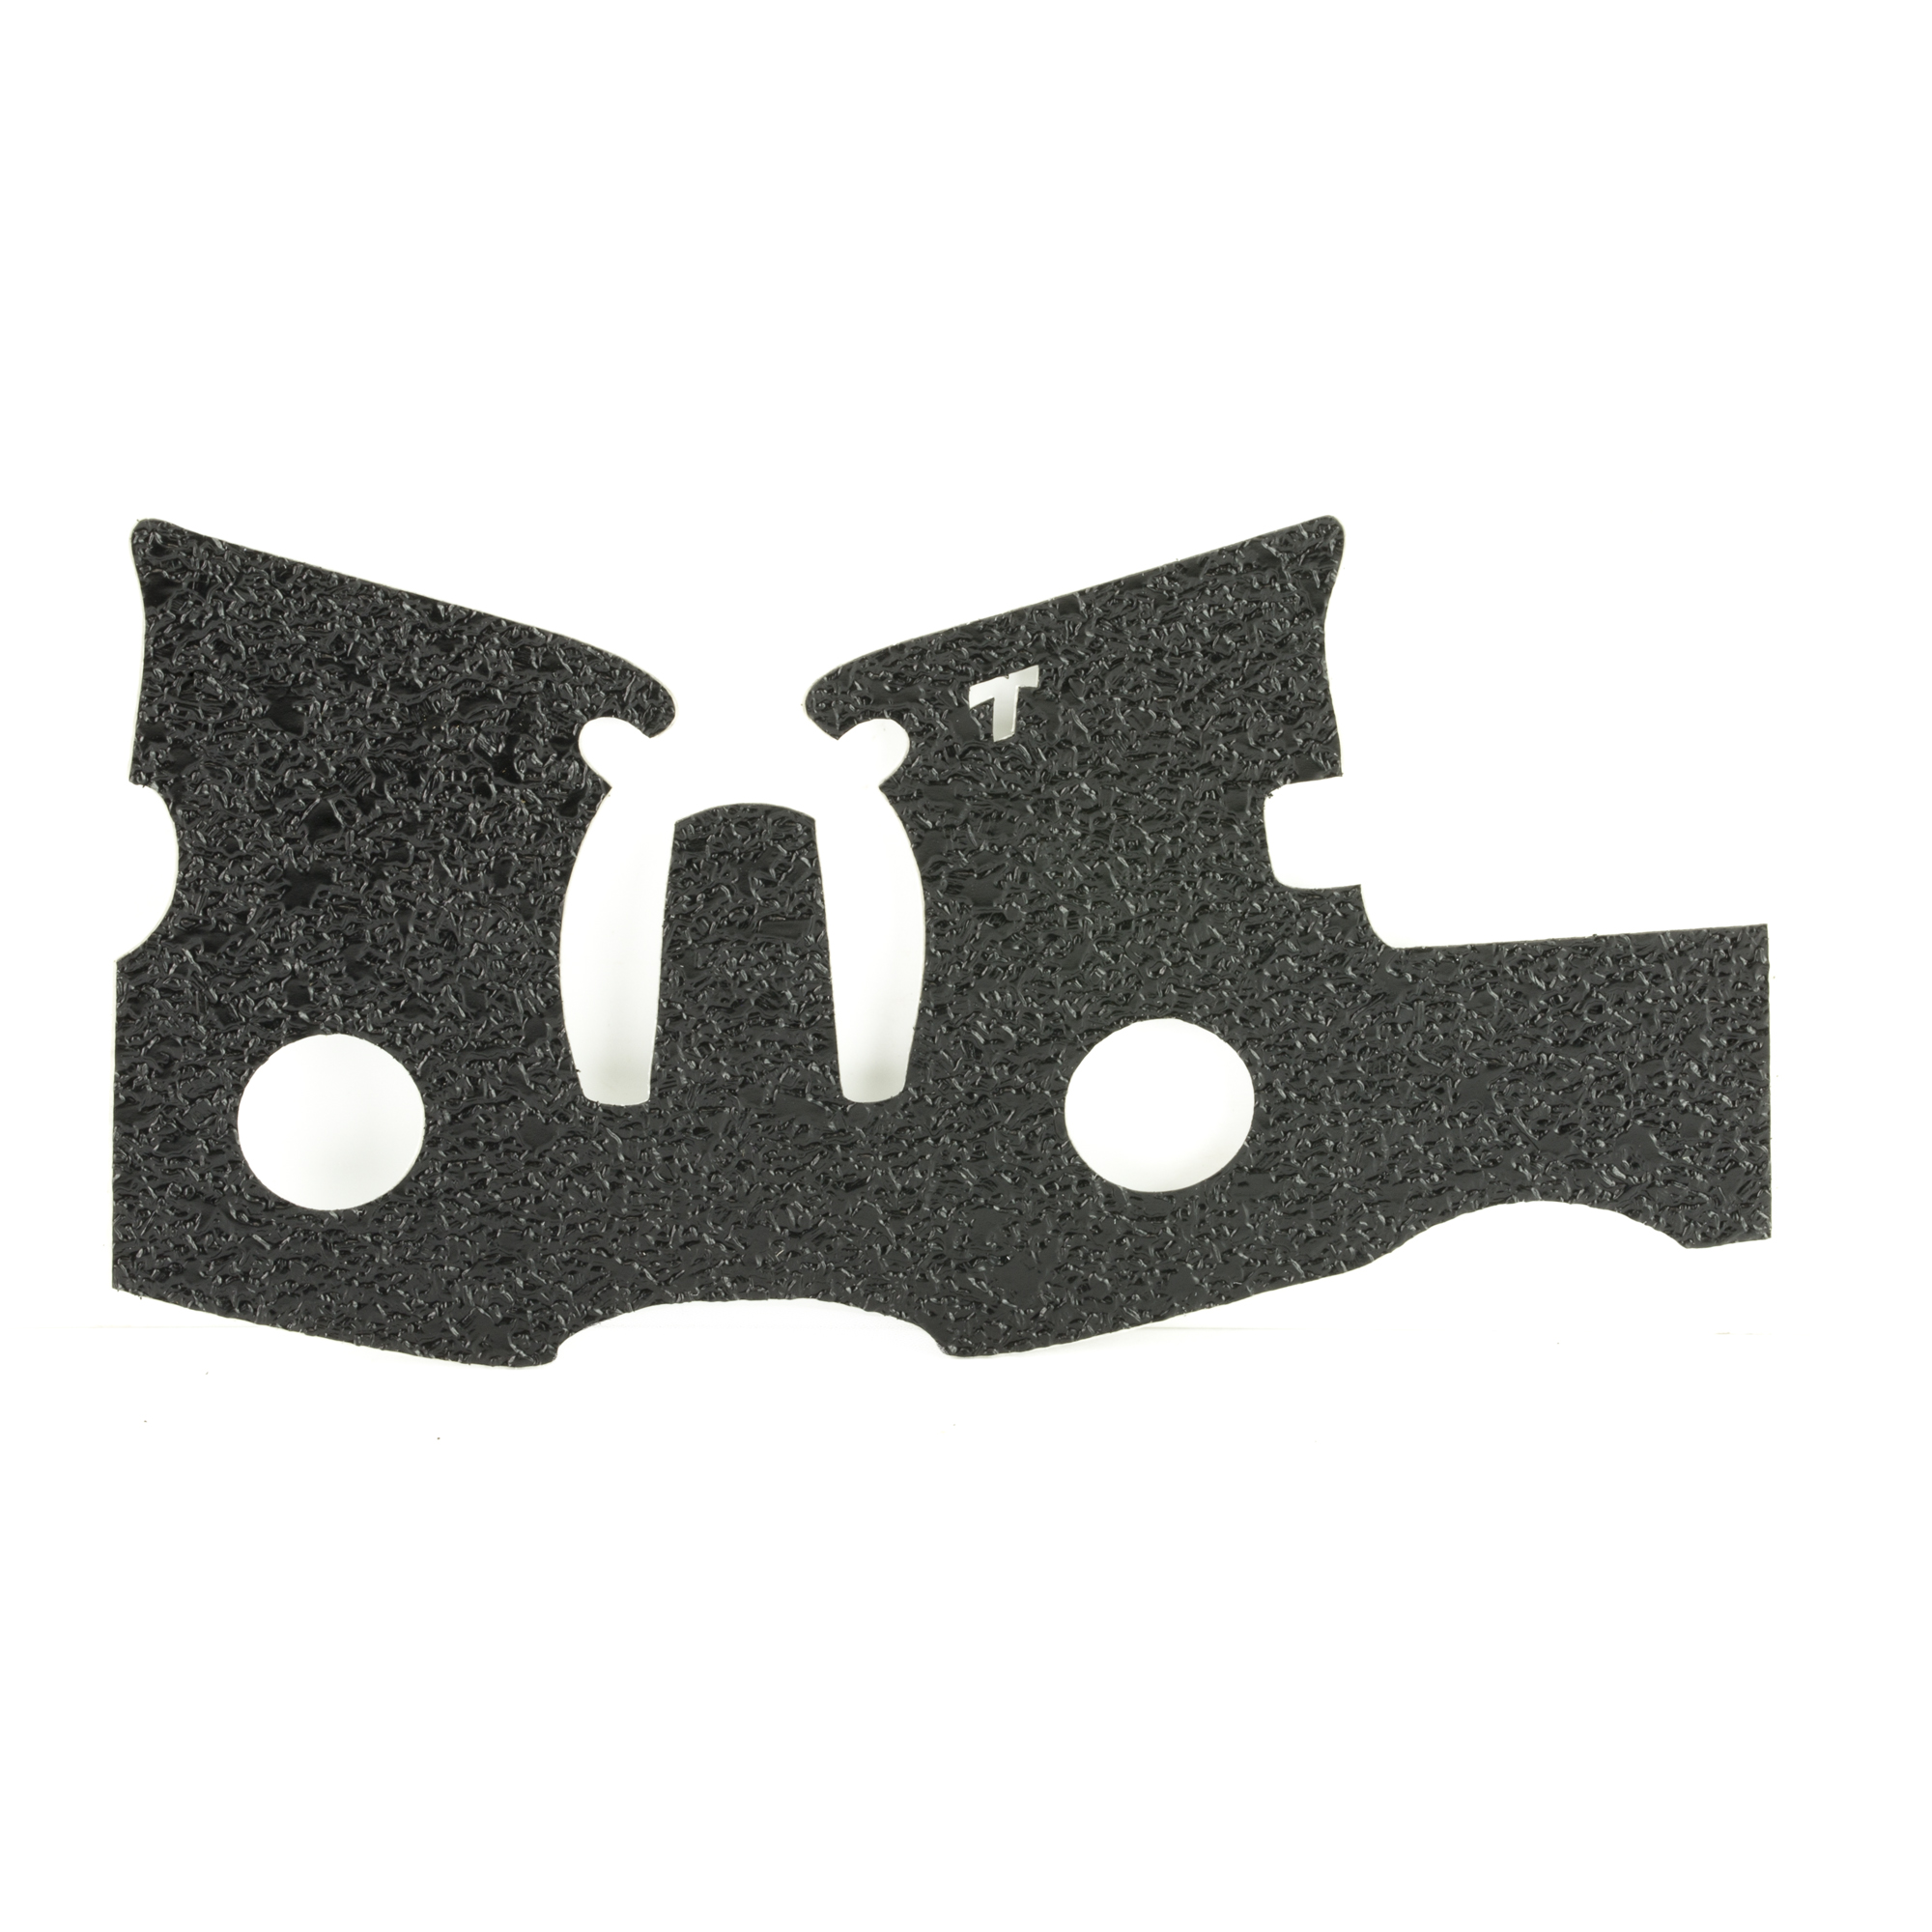 """TALON Grips for Ruger LCP model. This rear wrap grip is in the rubber texture and offers full side panel coverage including the thumb rest area"""" full coverage under the trigger guard"""" and high coverage on the backstrap. This grip has graphic cutouts for the Ruger emblem on each side of the firearm."""